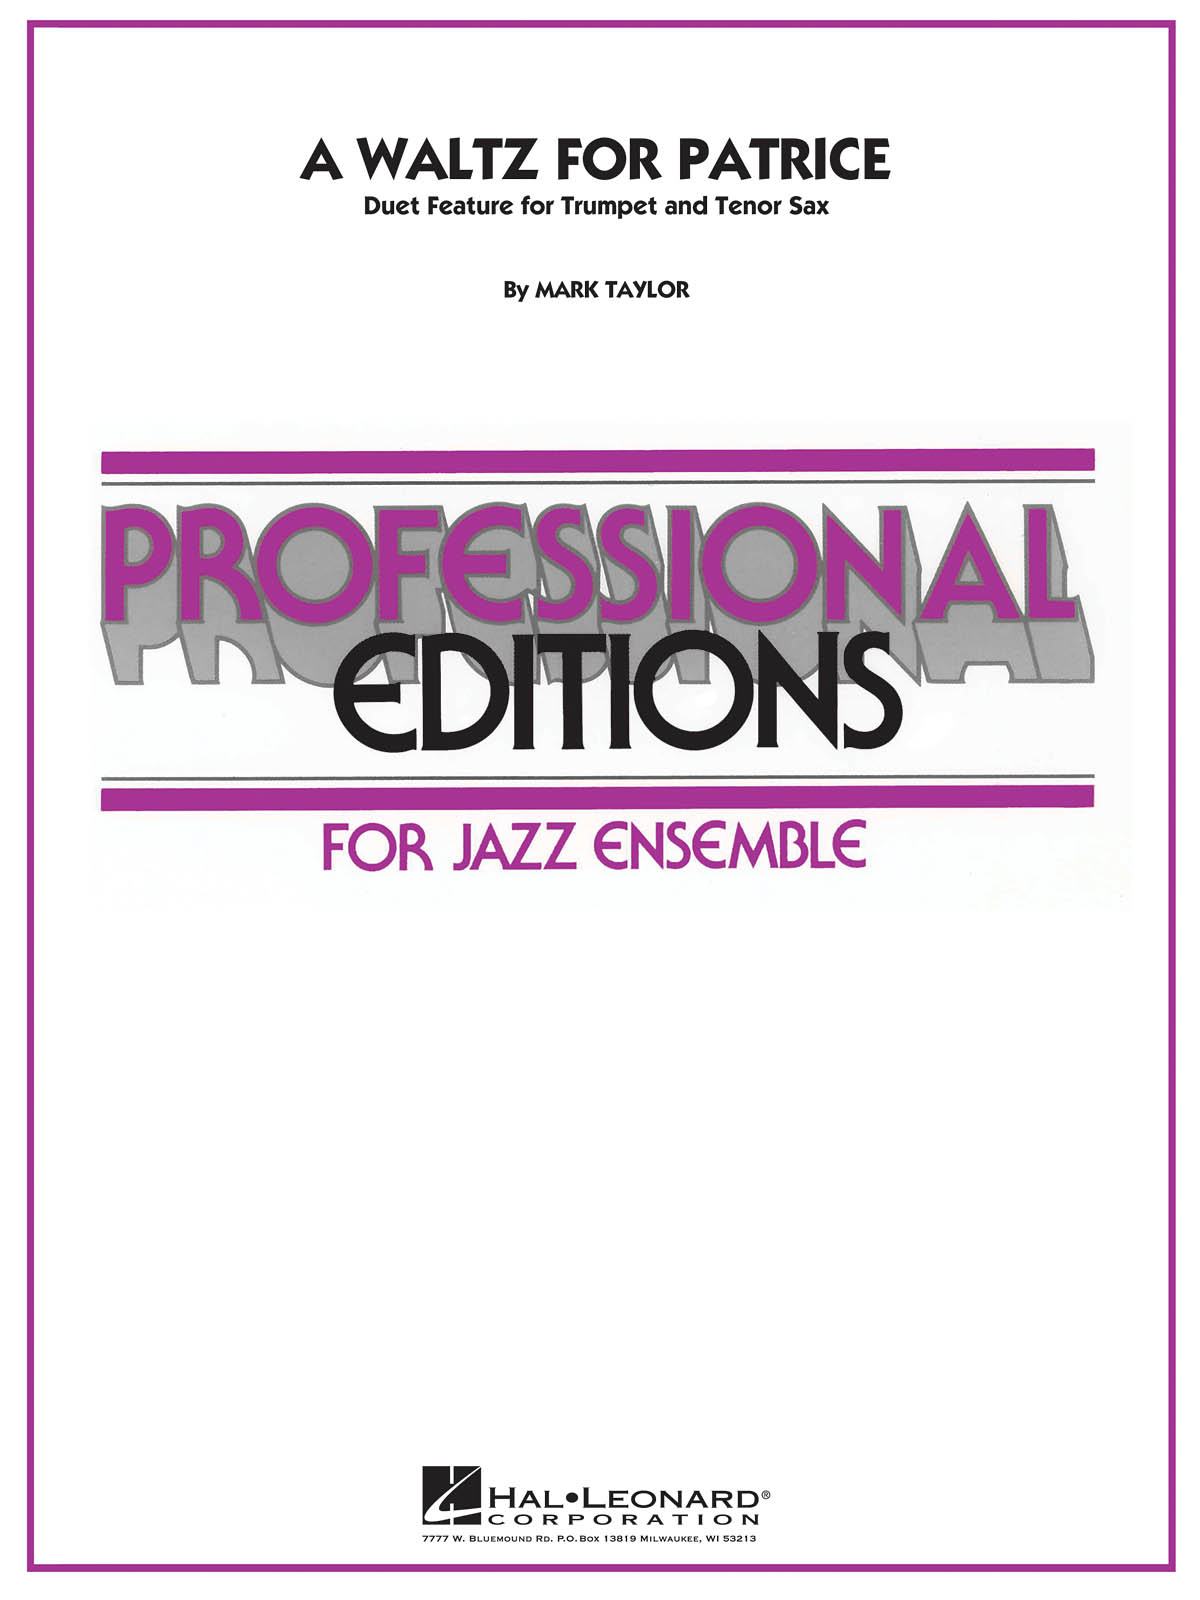 A Waltz for Patrice: Professional Editions for Jazz Ensemble